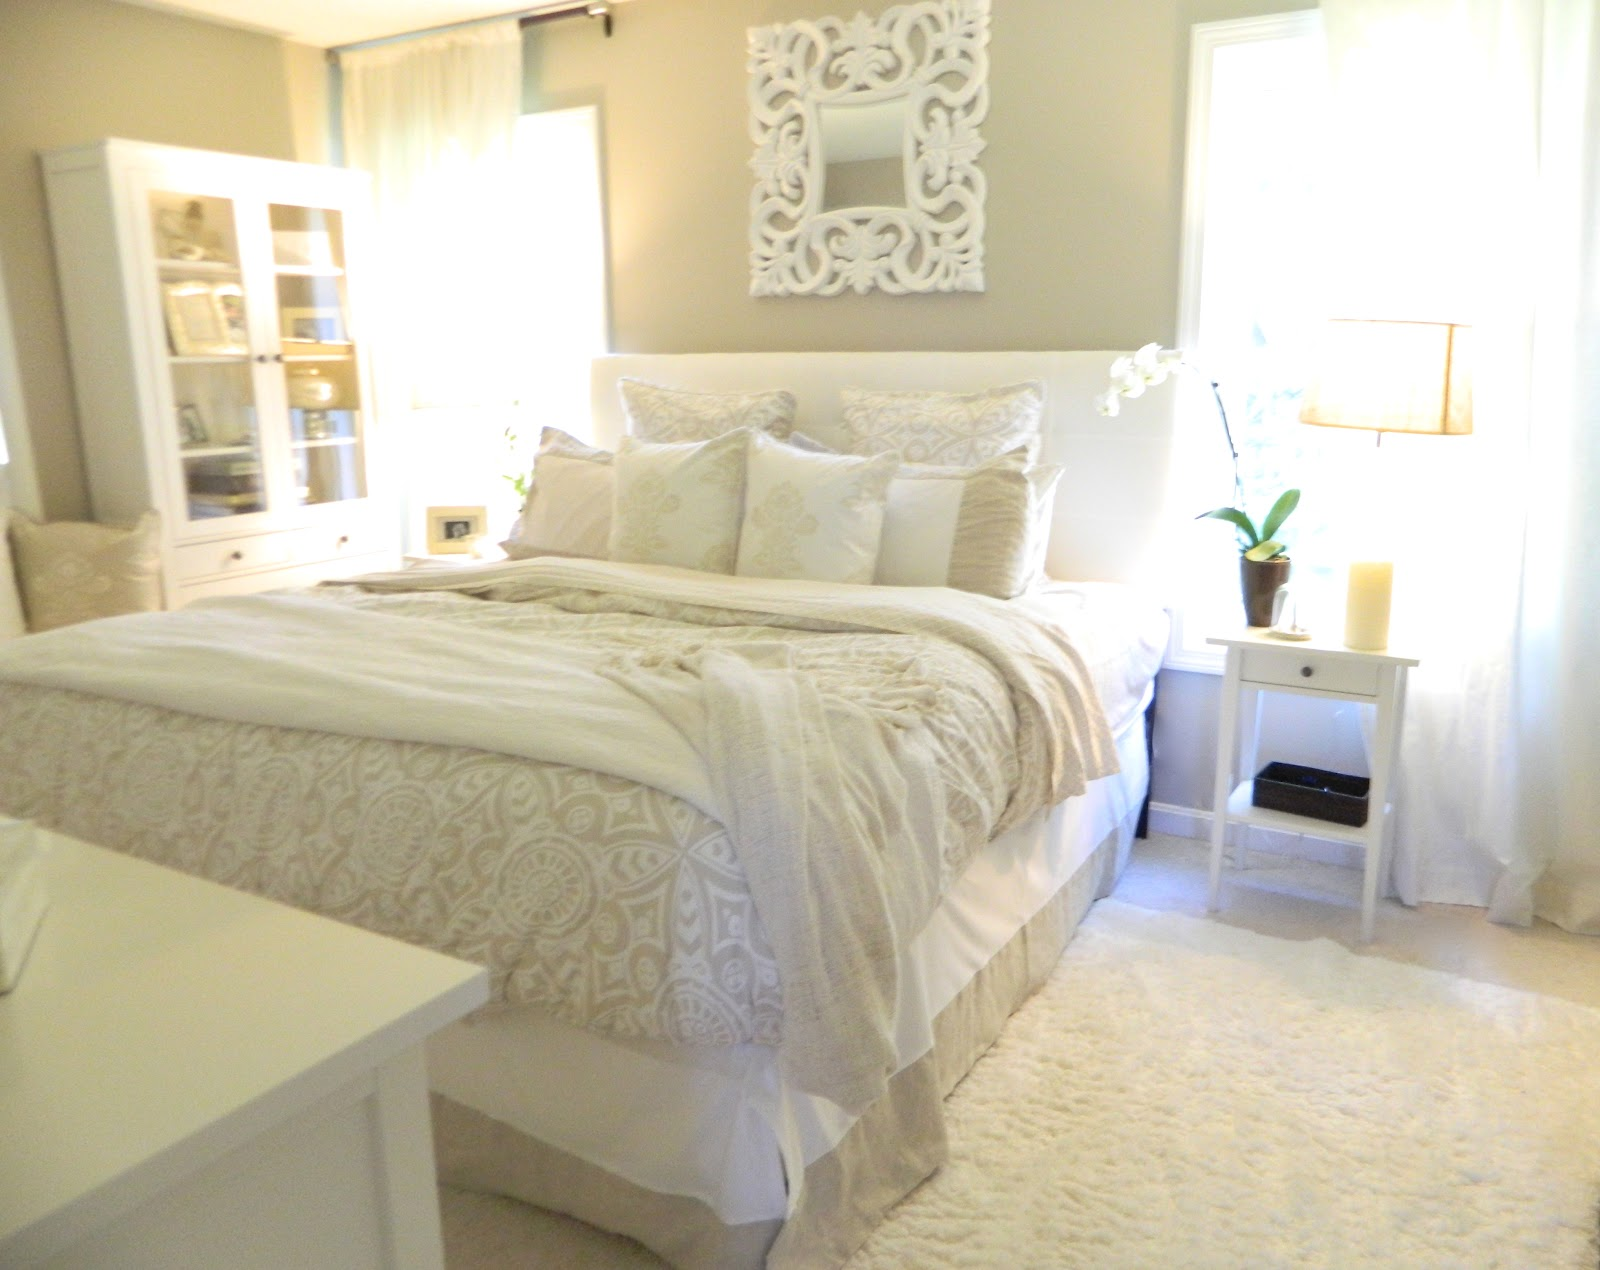 Peaceful home decor our romantic and peaceful masterbedroom originally posted july 6 2012 - Bedrooms designs ...